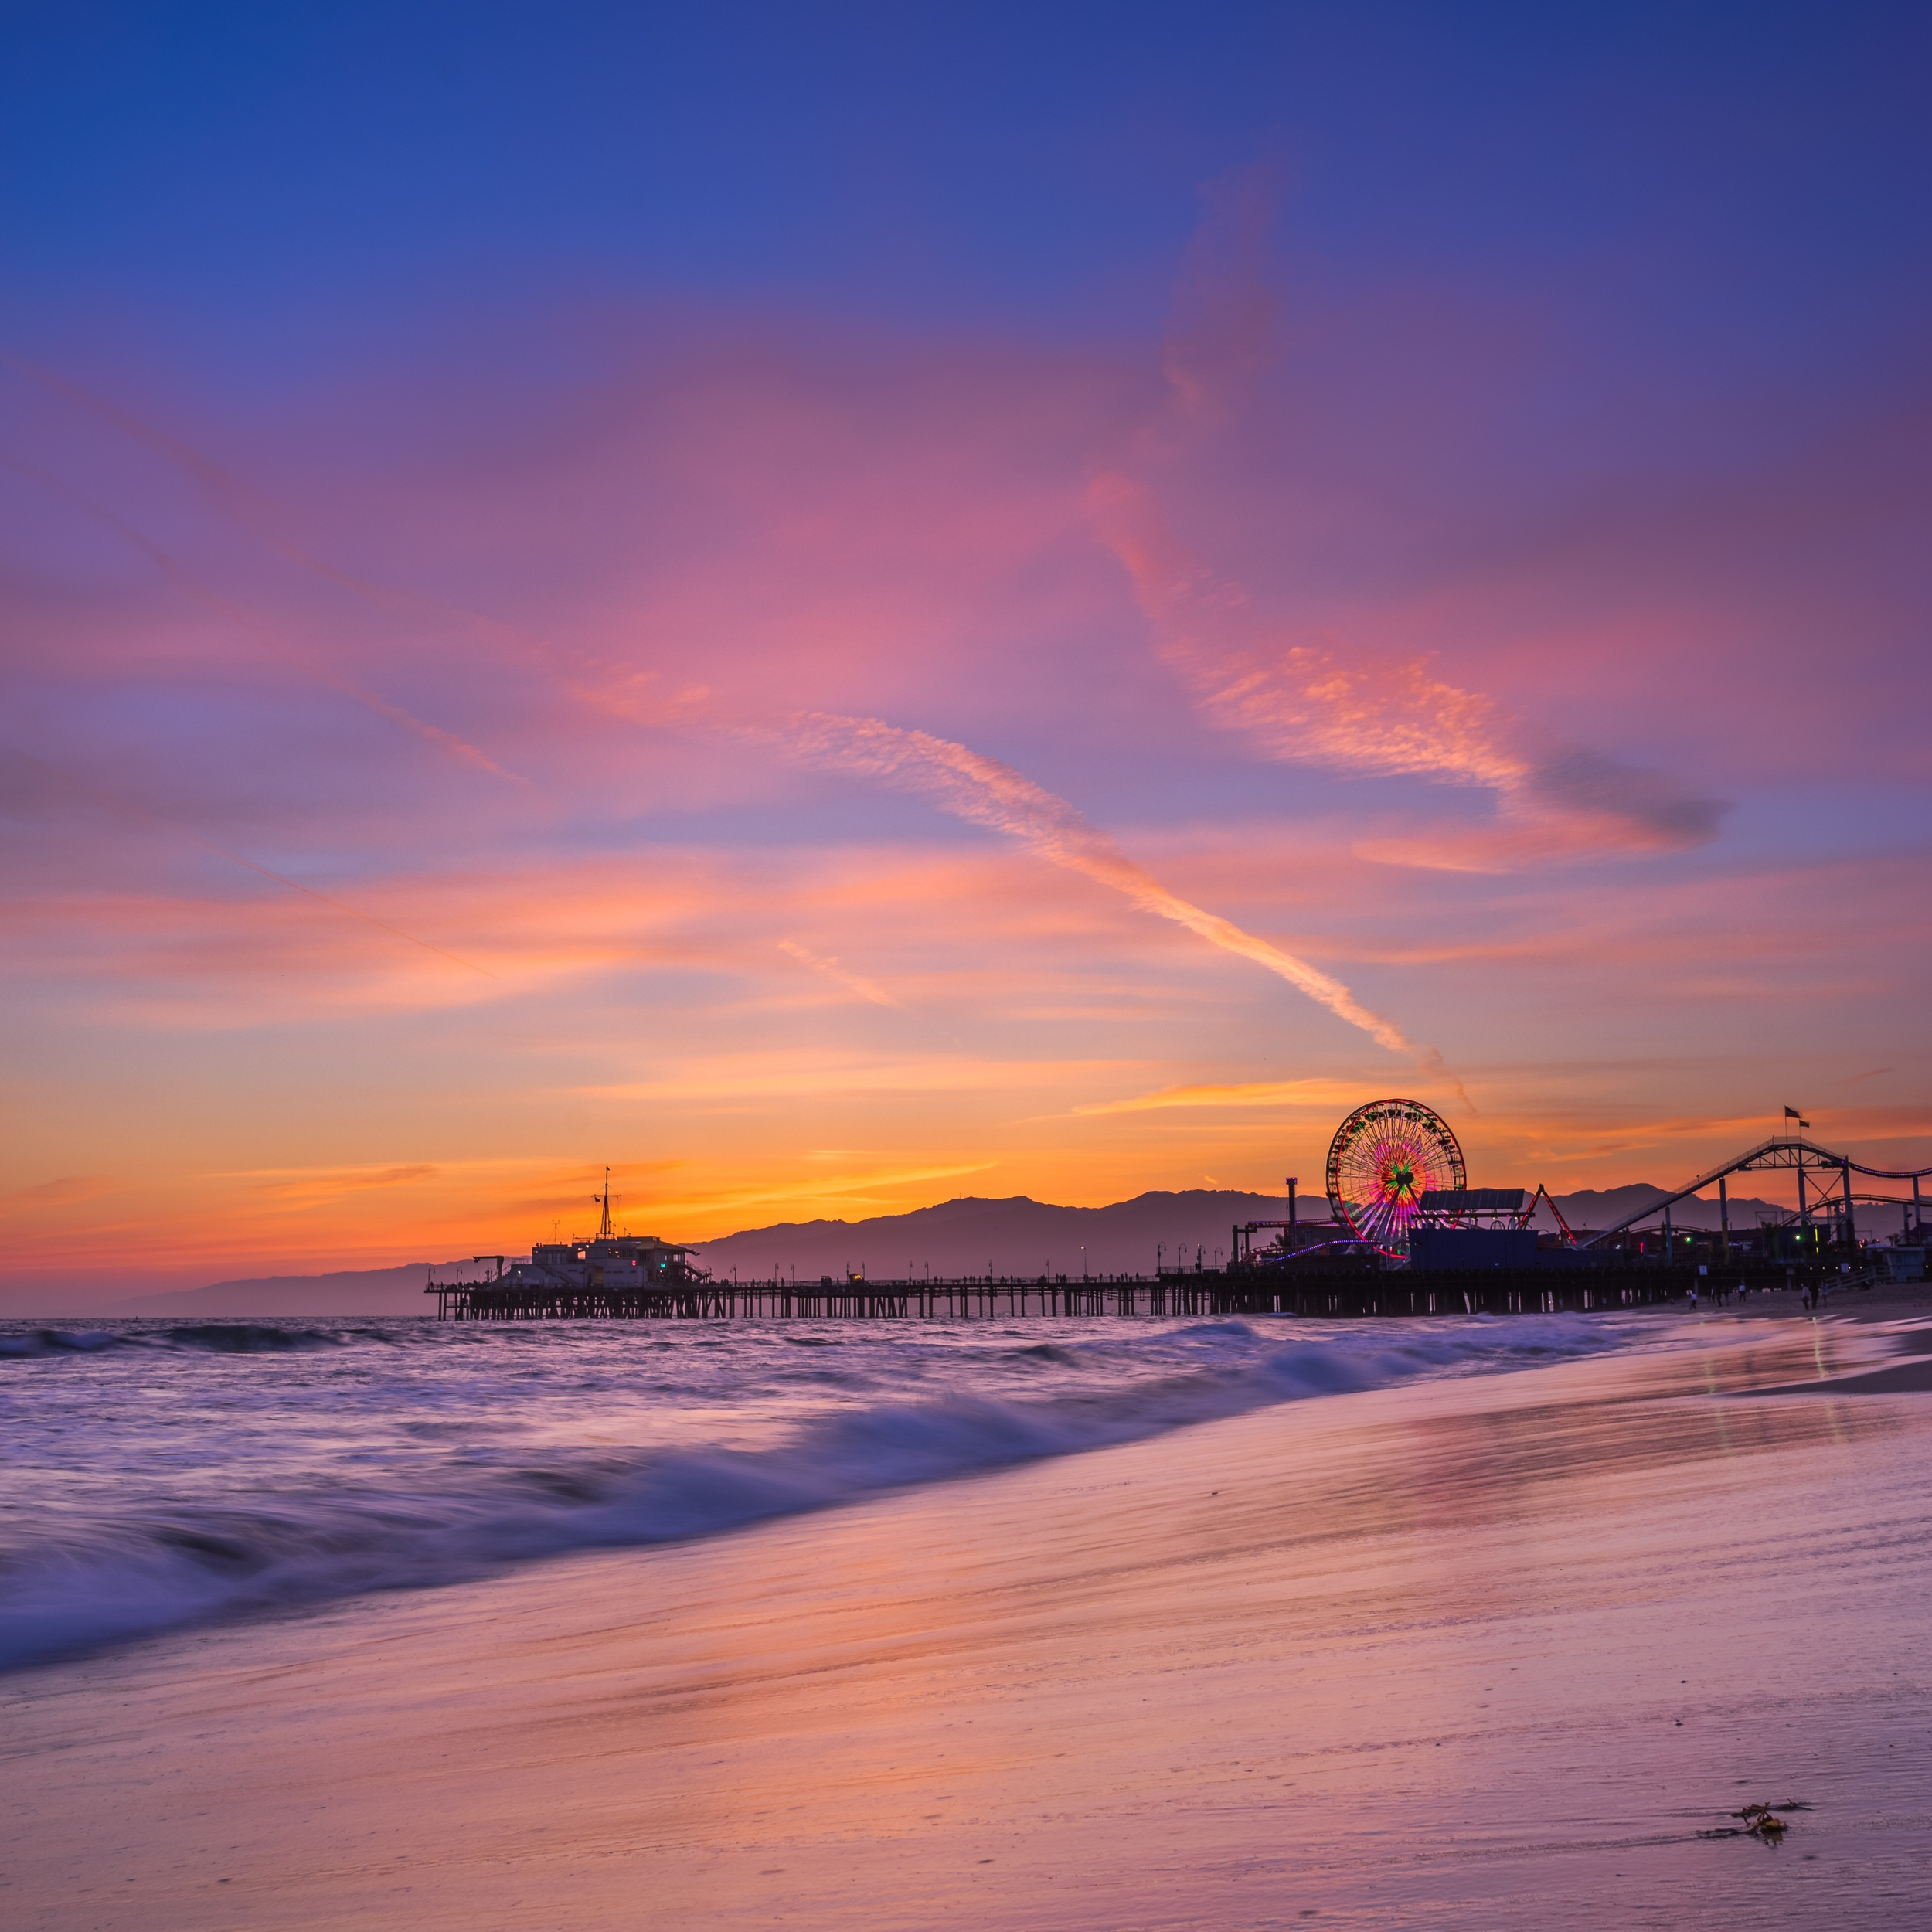 Sunset in Santa Monica, CA